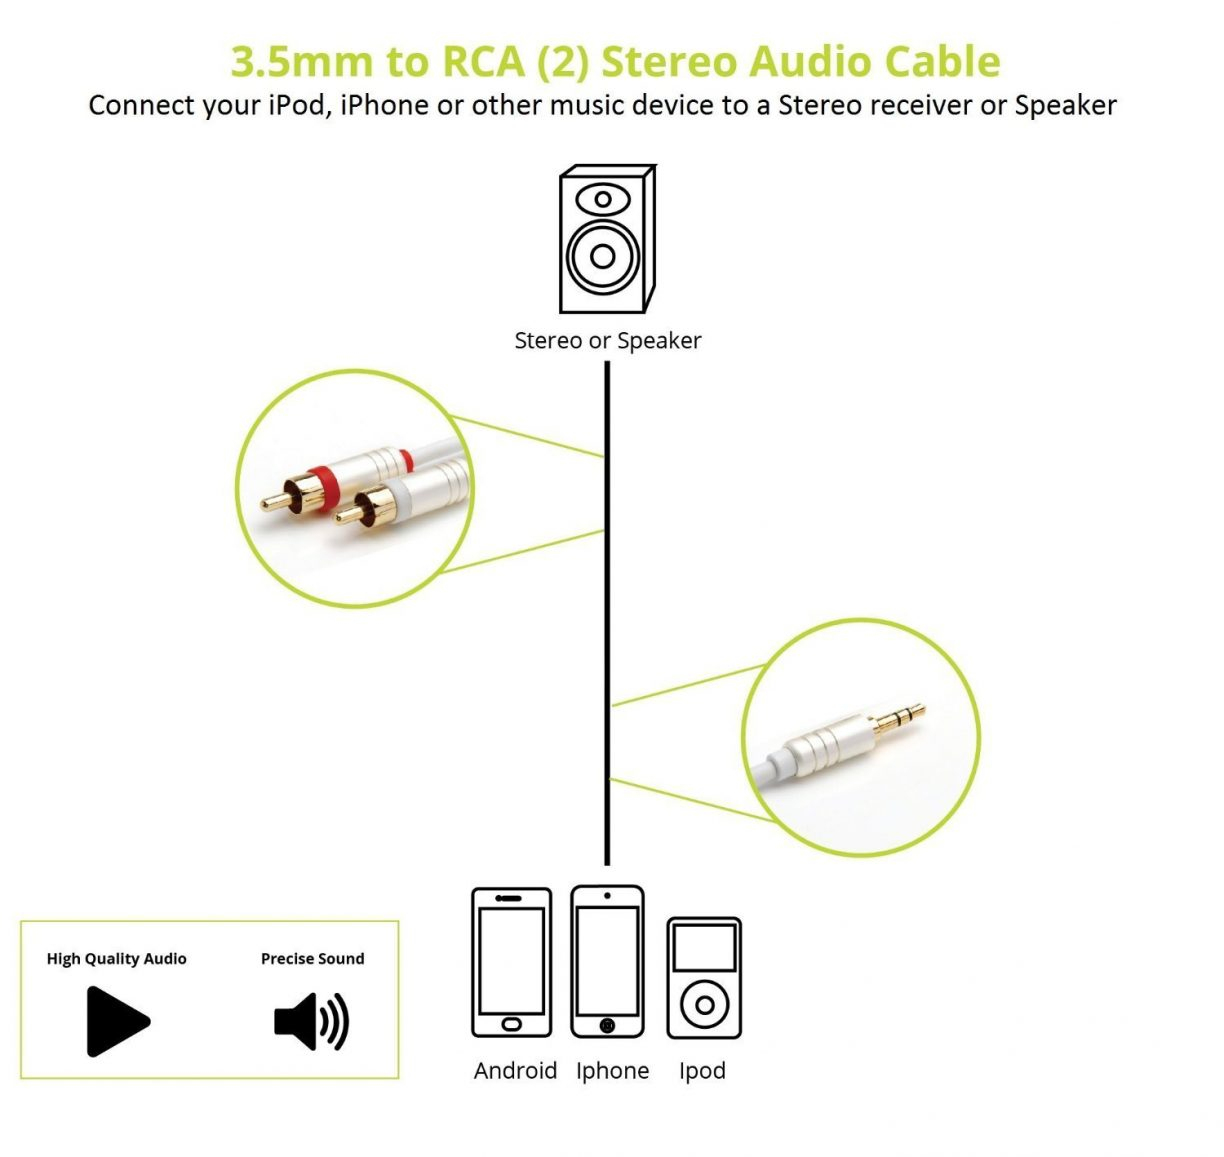 Audio Cable Wiring Diagram Mfi Lightning Jack Adapter Ipod Wiringam - Diagram Of Usb To 3.5 Mm Jack Adapter Wiring